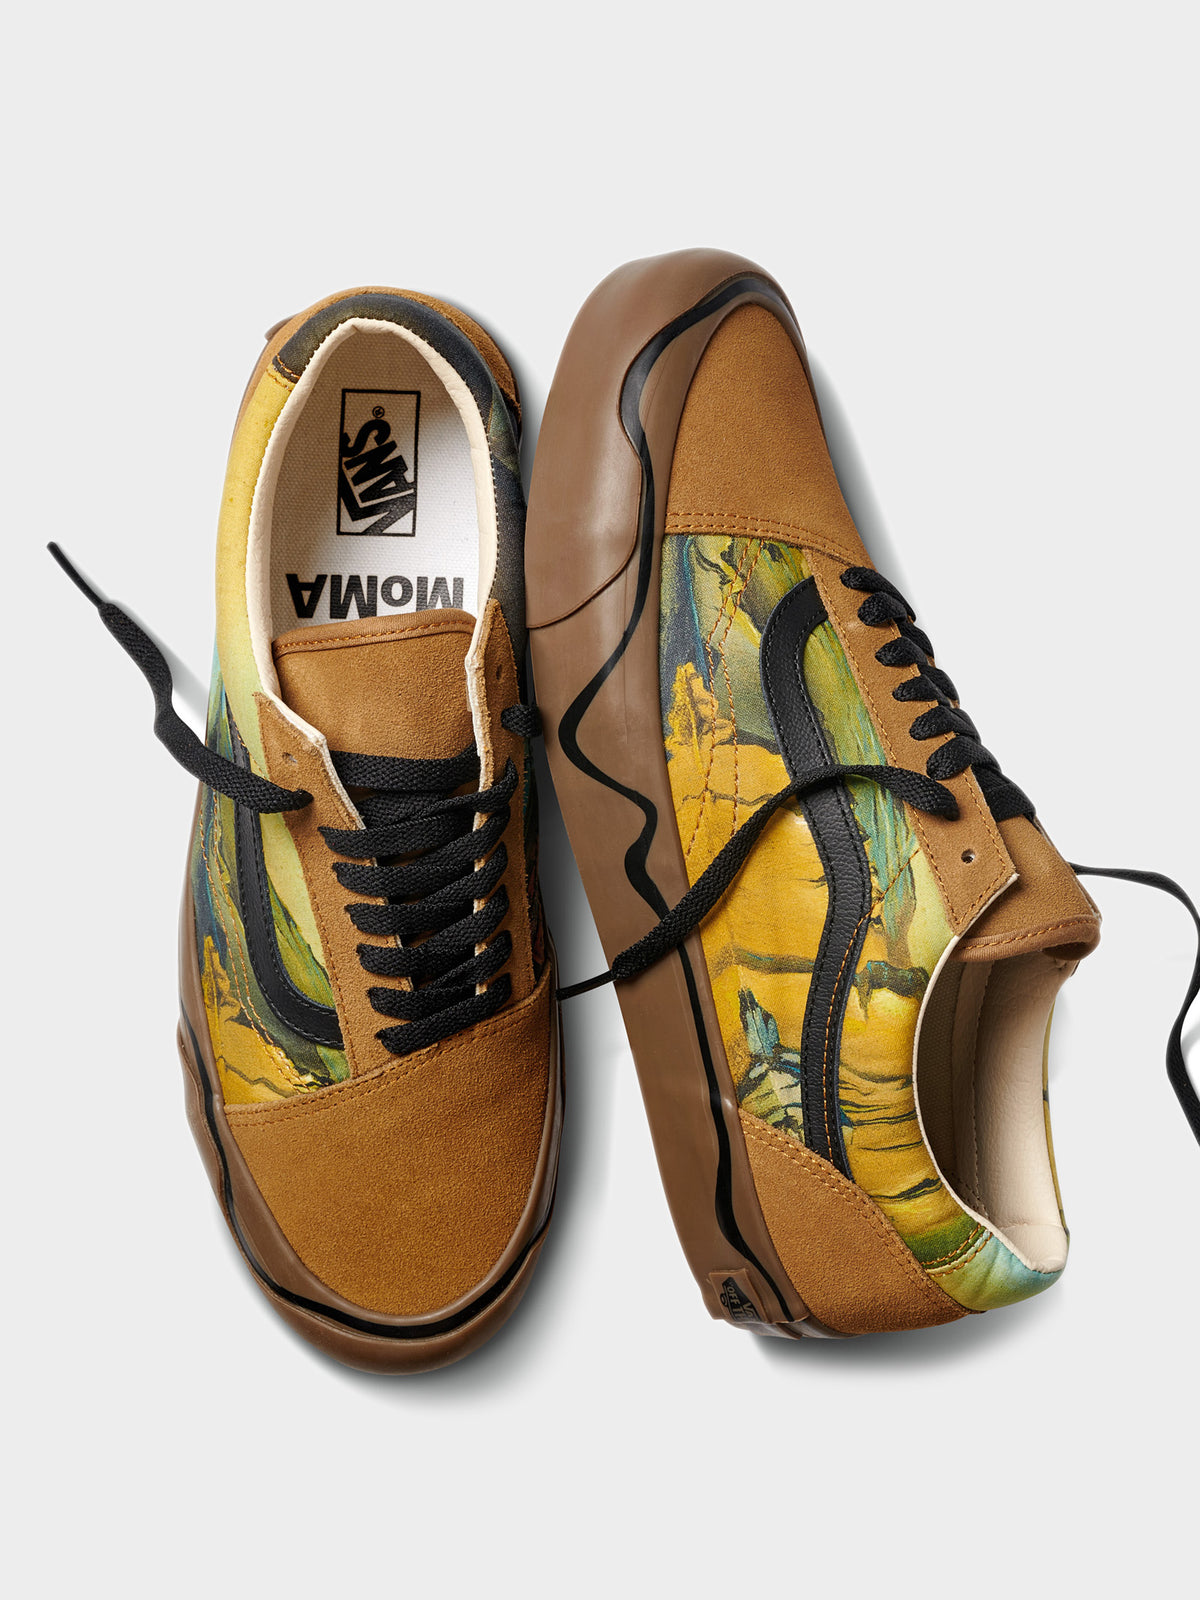 Unisex Old Skool Twist MoMA Sneakers in Salvador Dali Print